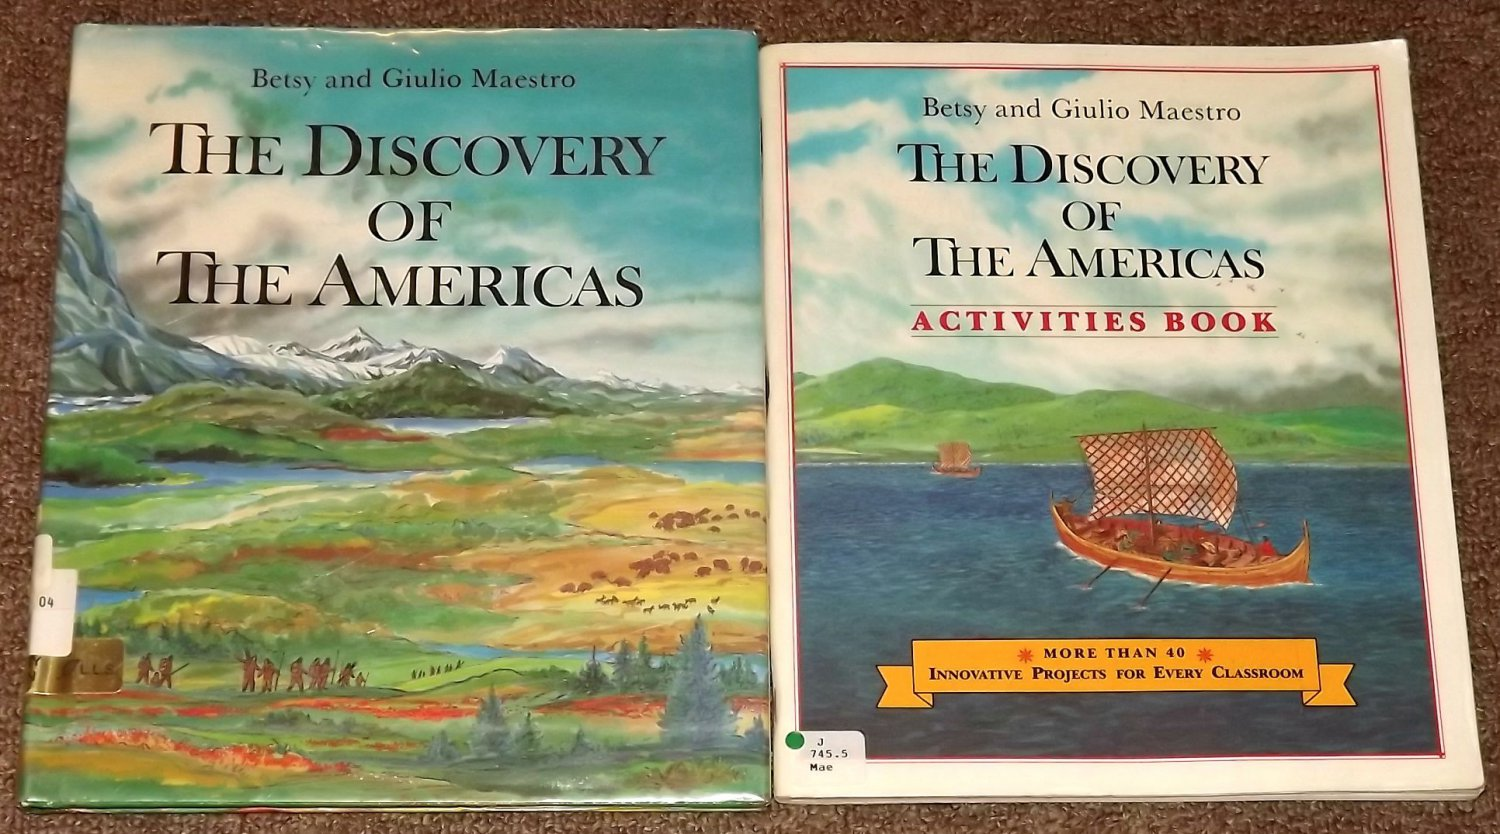 The Discovery of the Americas by Betsy and Giulio Maestro + Activities Book